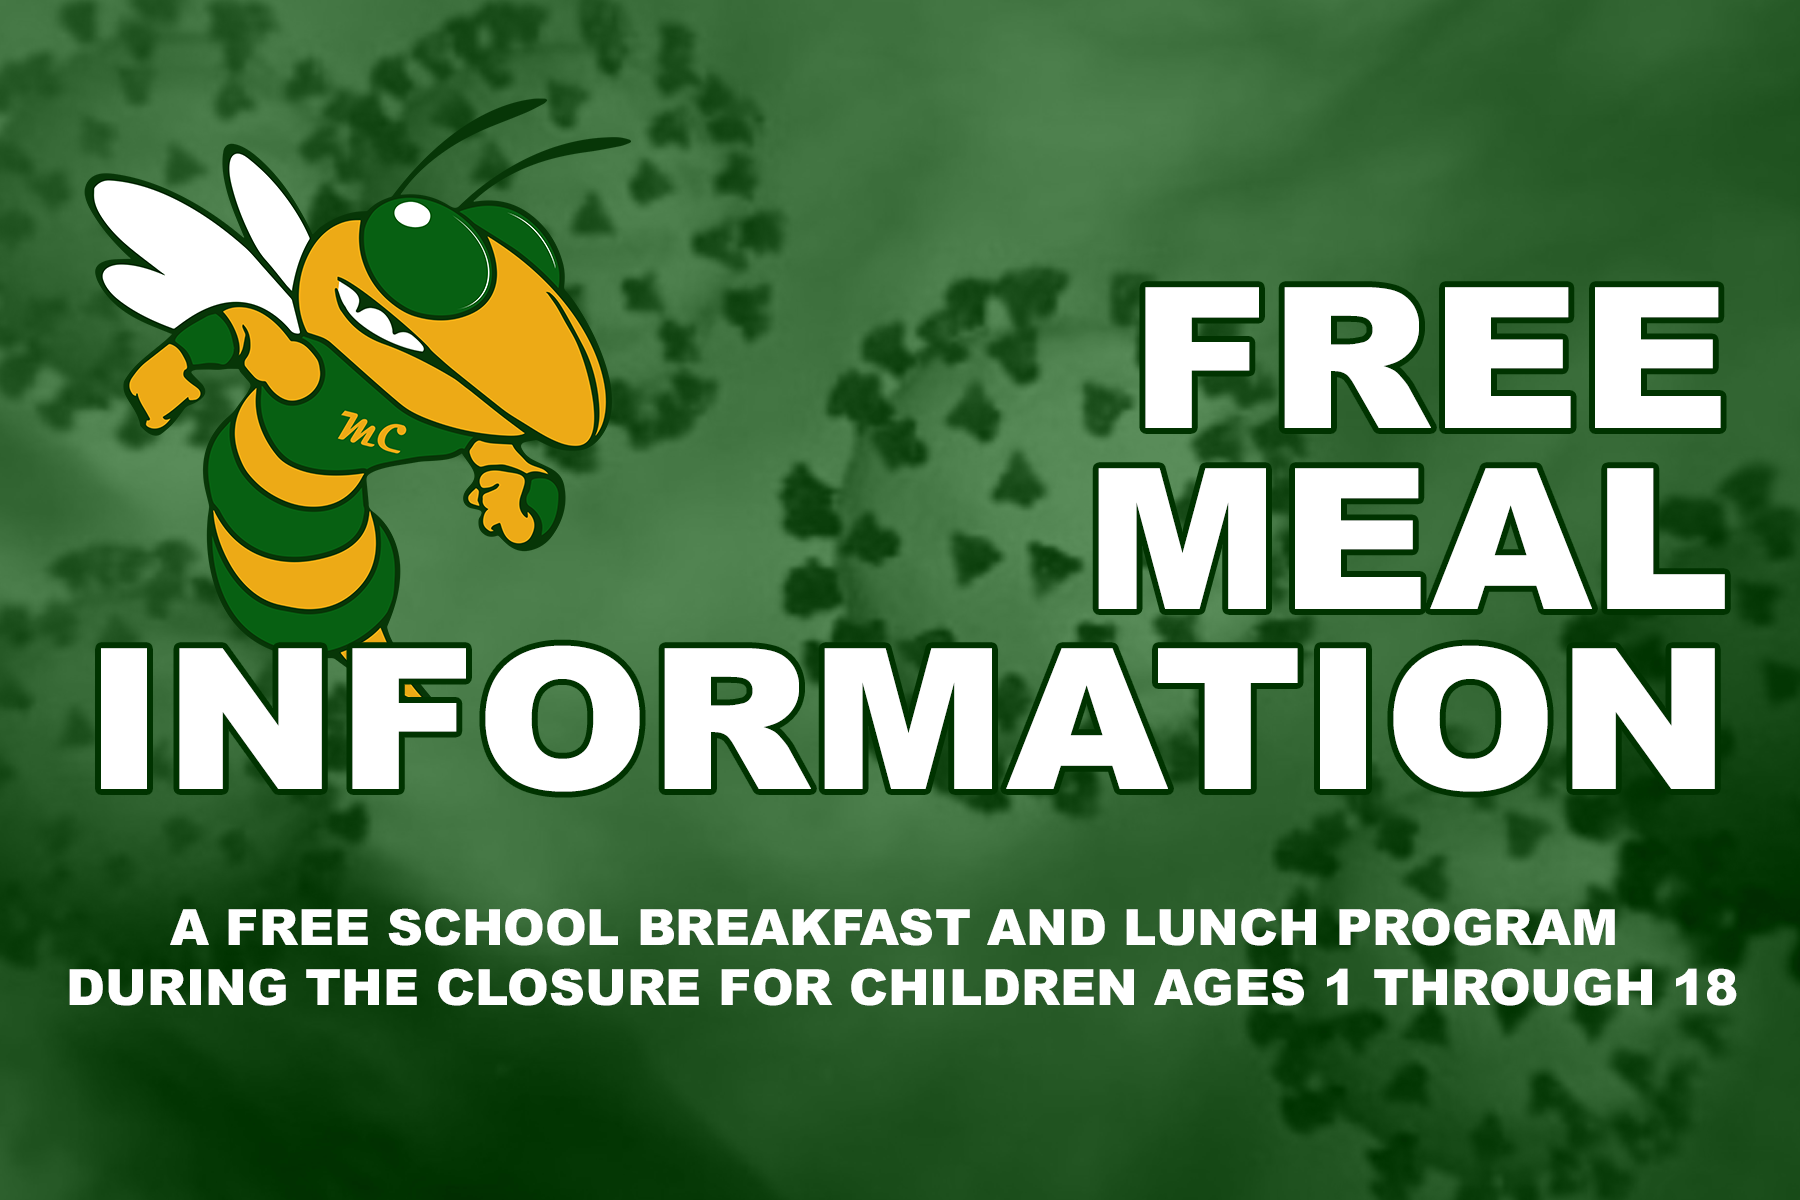 Free Meal Information